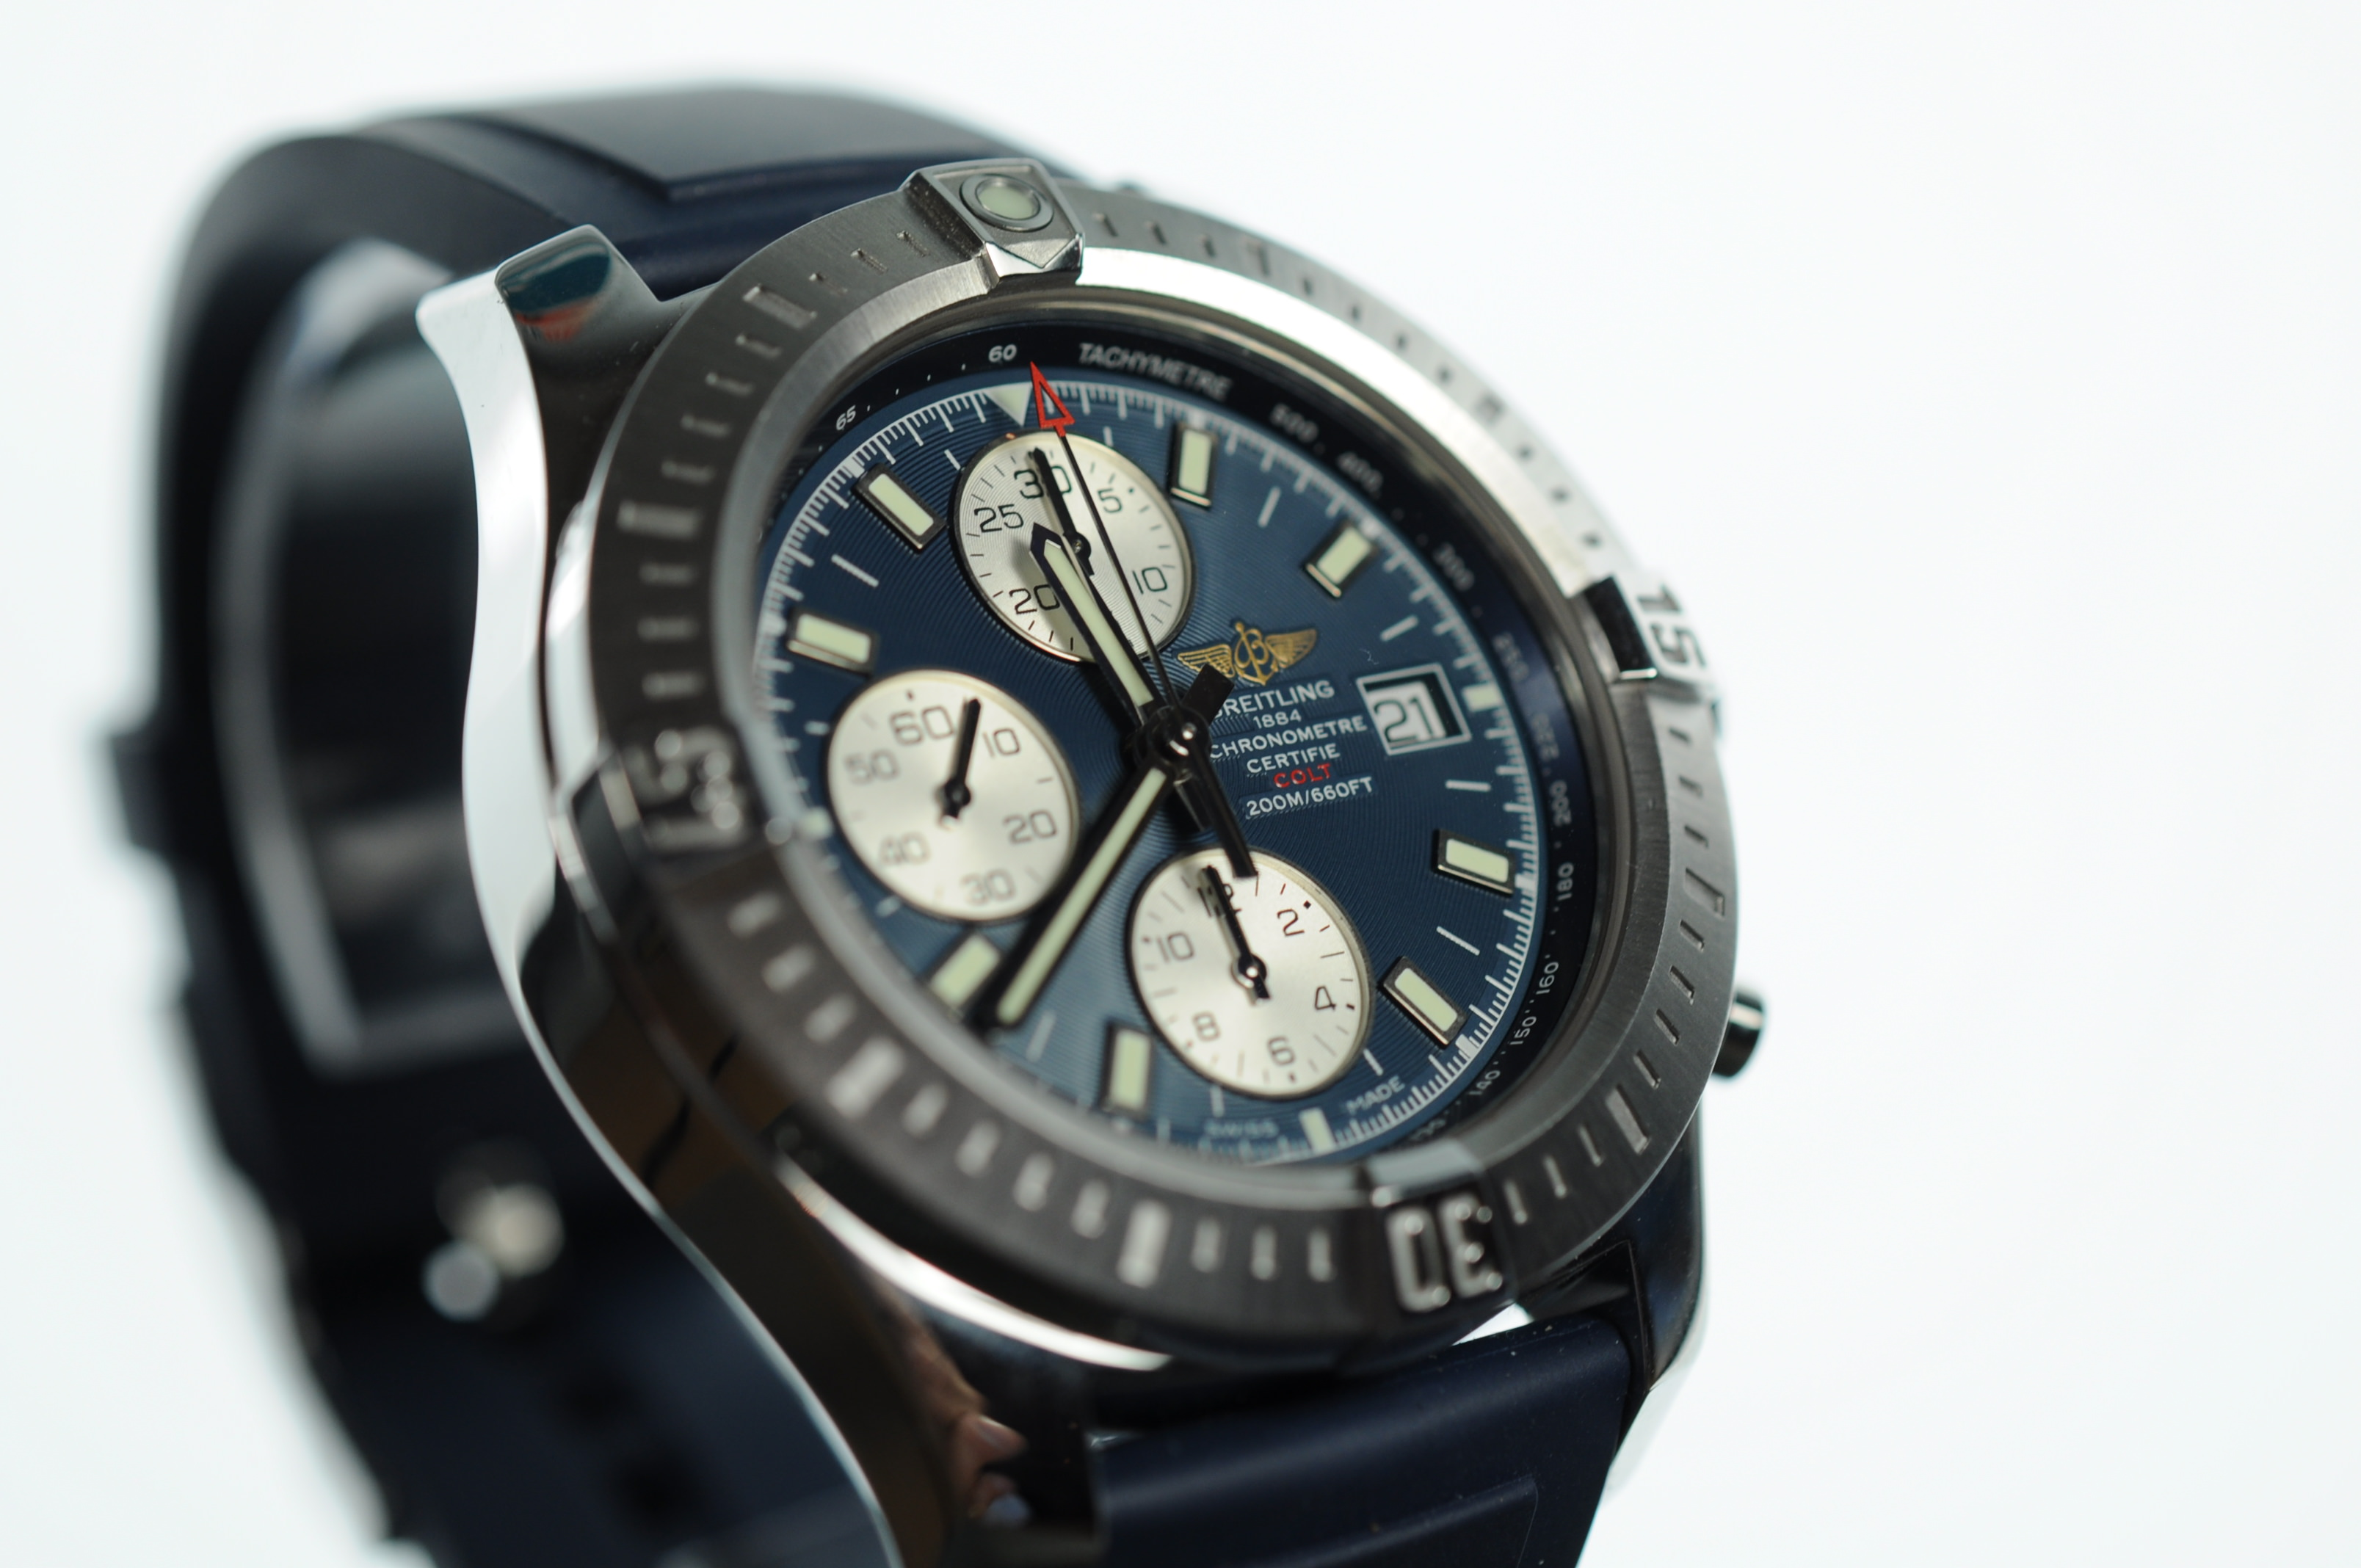 fantastic savings on new and unworn breitling sports